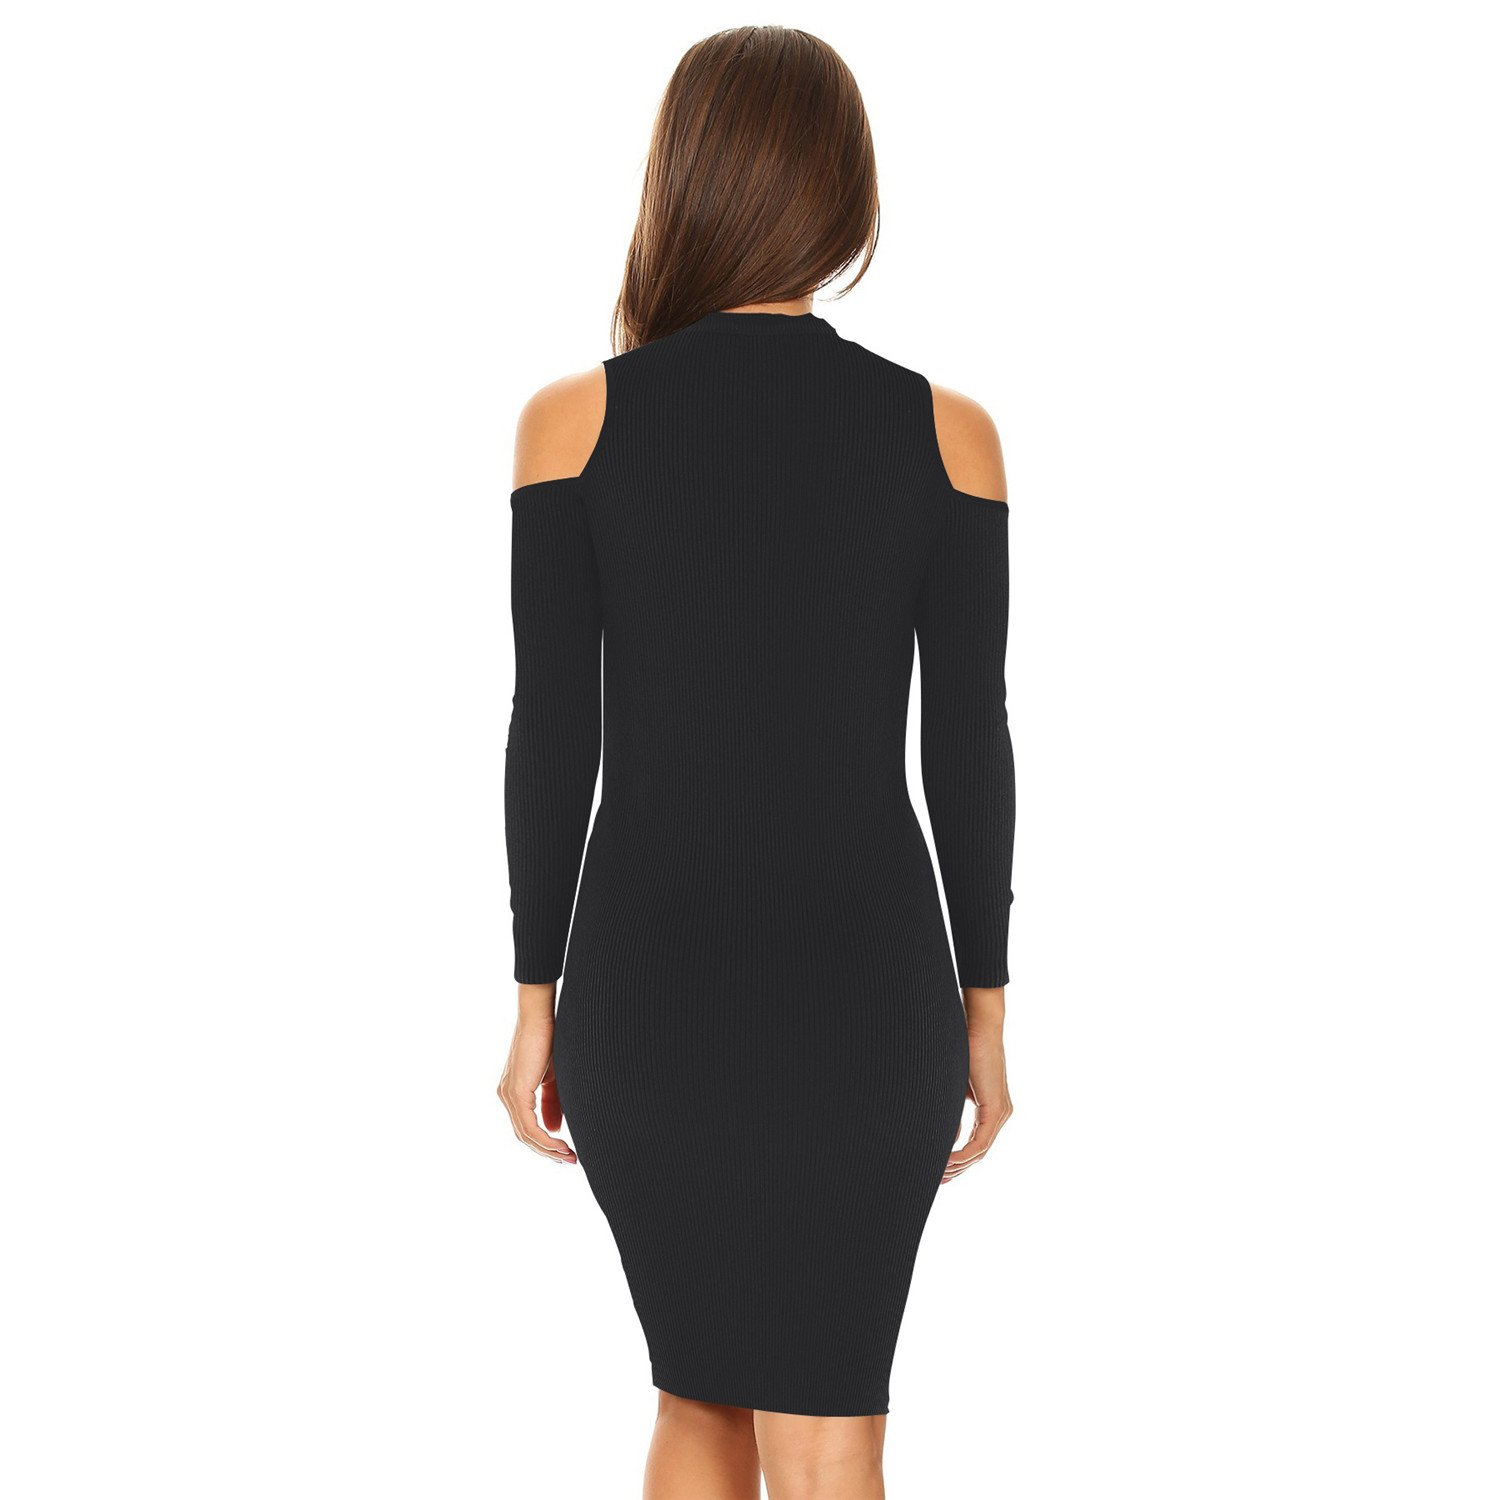 48379bd76cf Sexy Warm Long Sleeve High Mock Neck Cold Open Shoulder Ribbed Rib Knit  Mini Bodycon Sweater Dress at Amazon Women s Clothing store